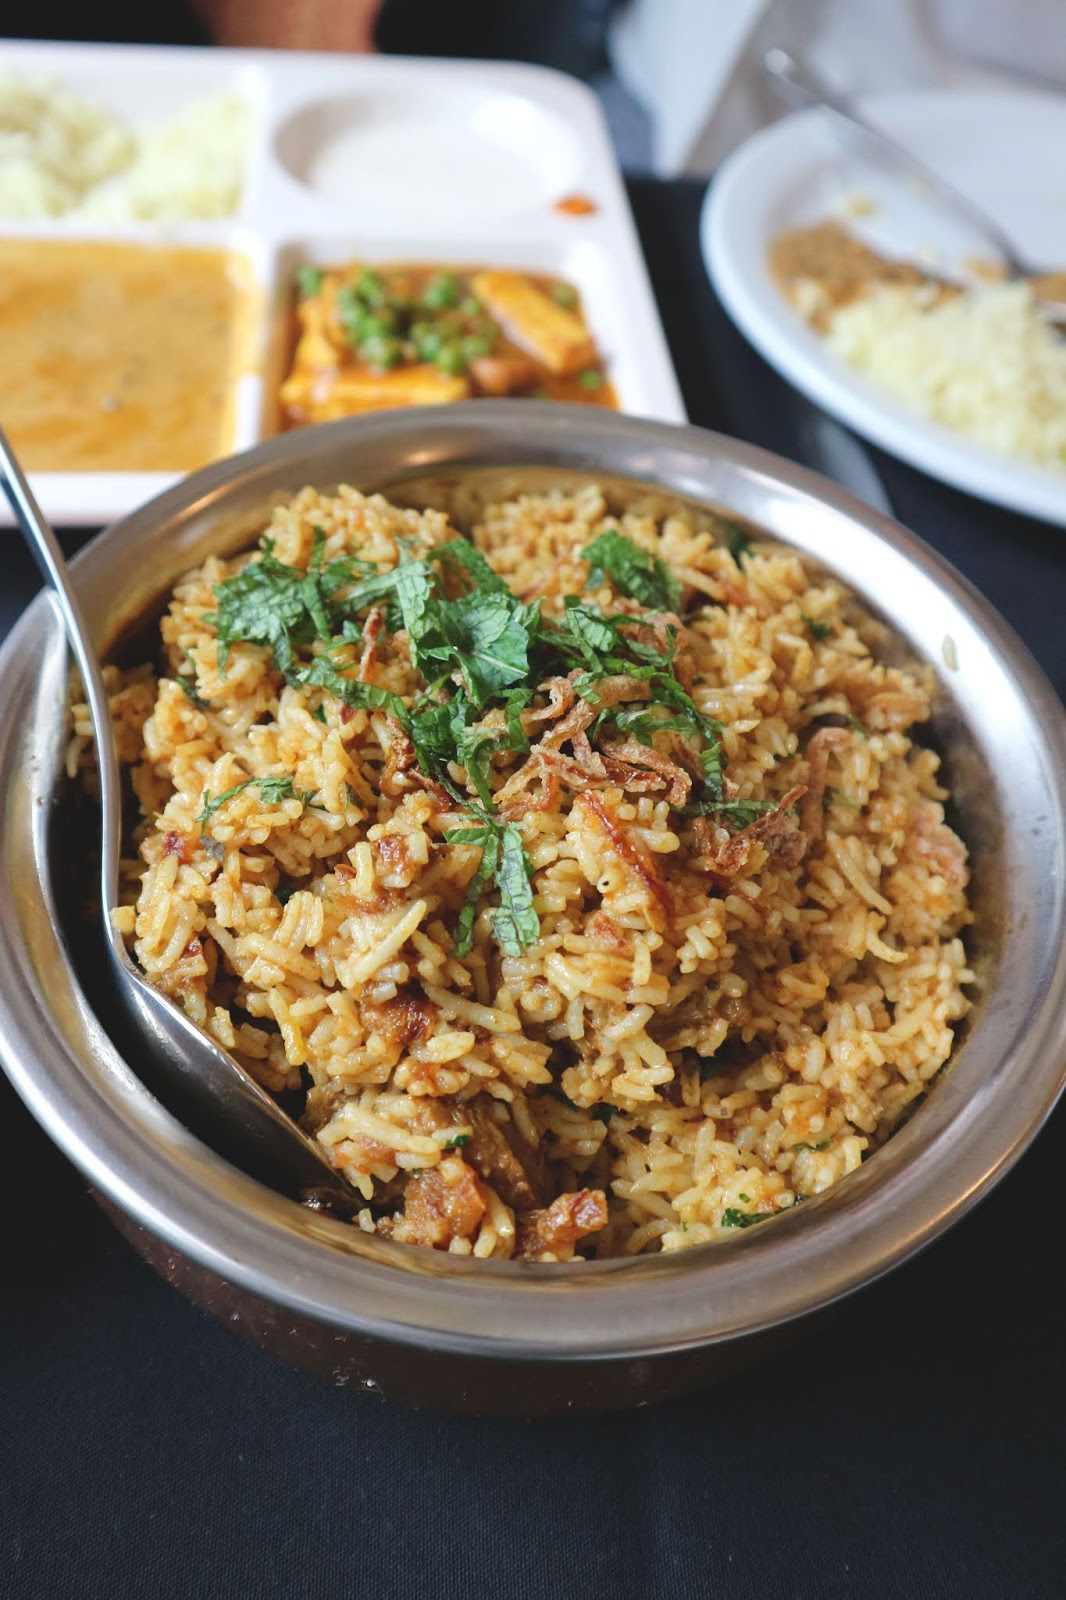 Namaste Kingston - New Indian Restaurant - Biryani